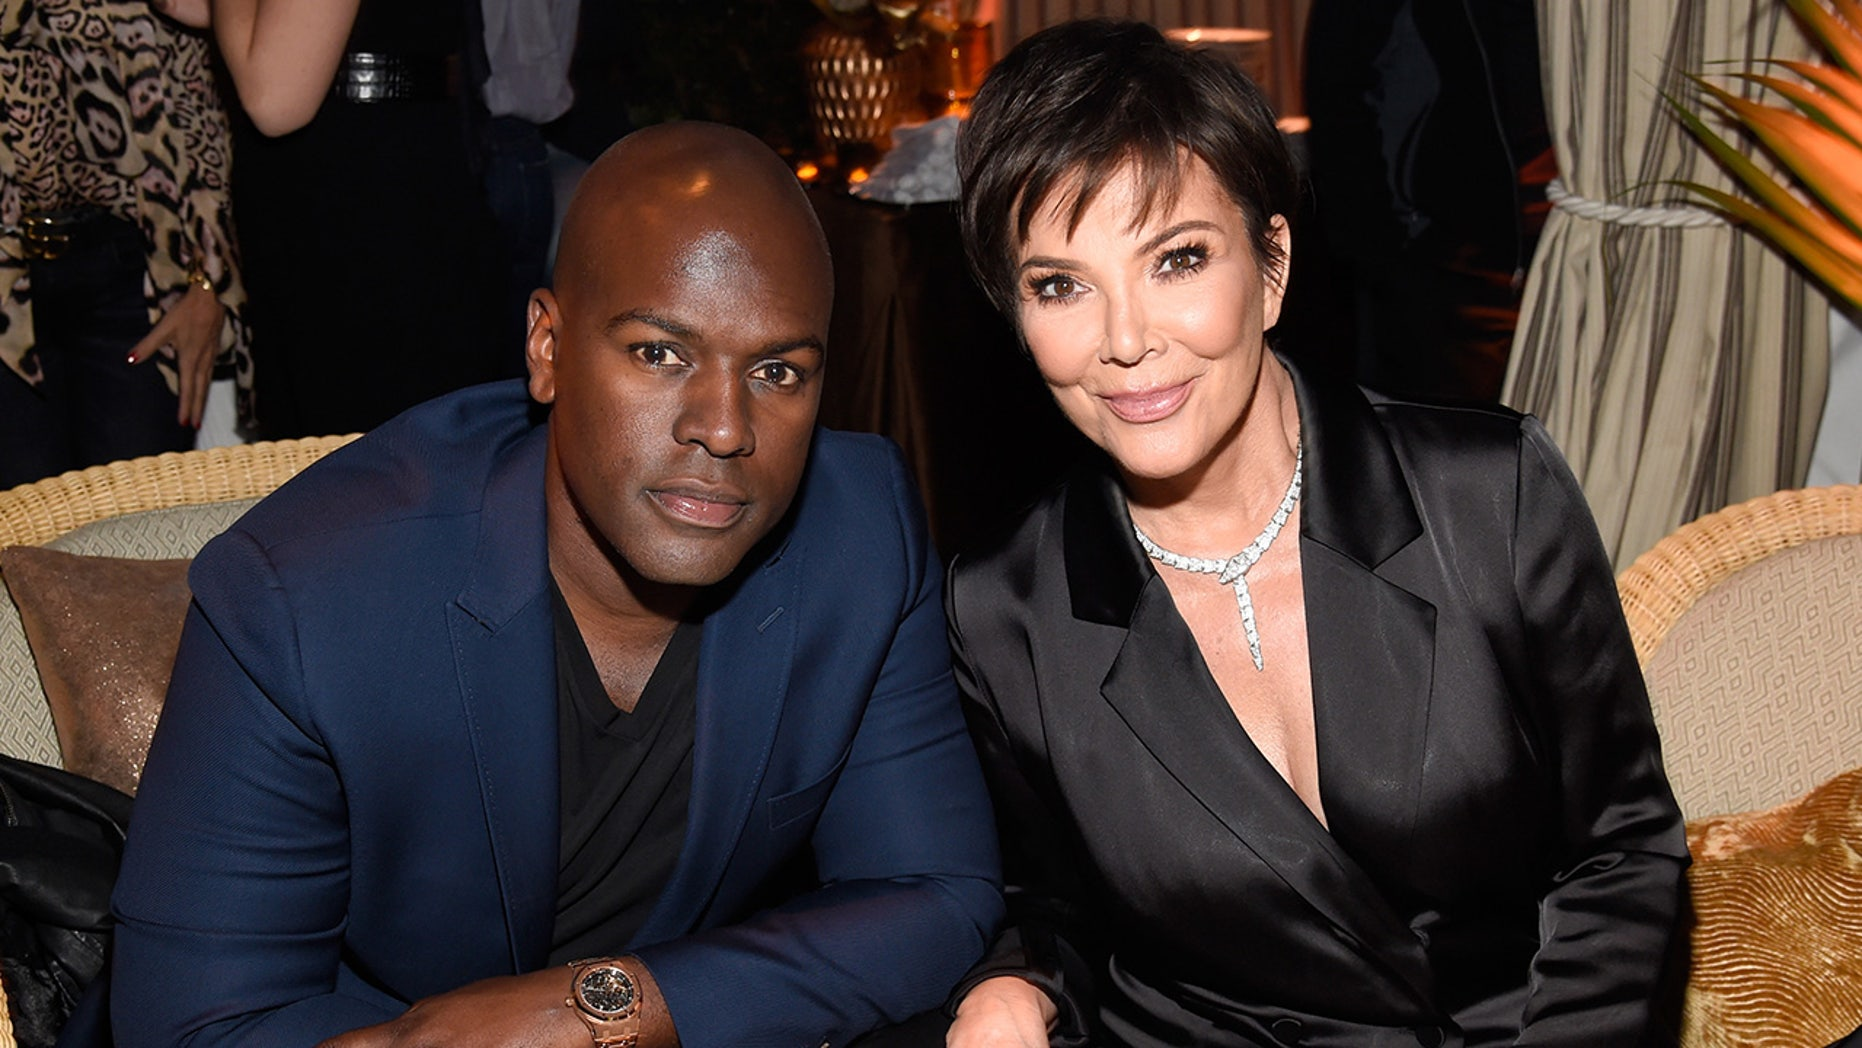 Jenner and Gamble began dating in 2014.